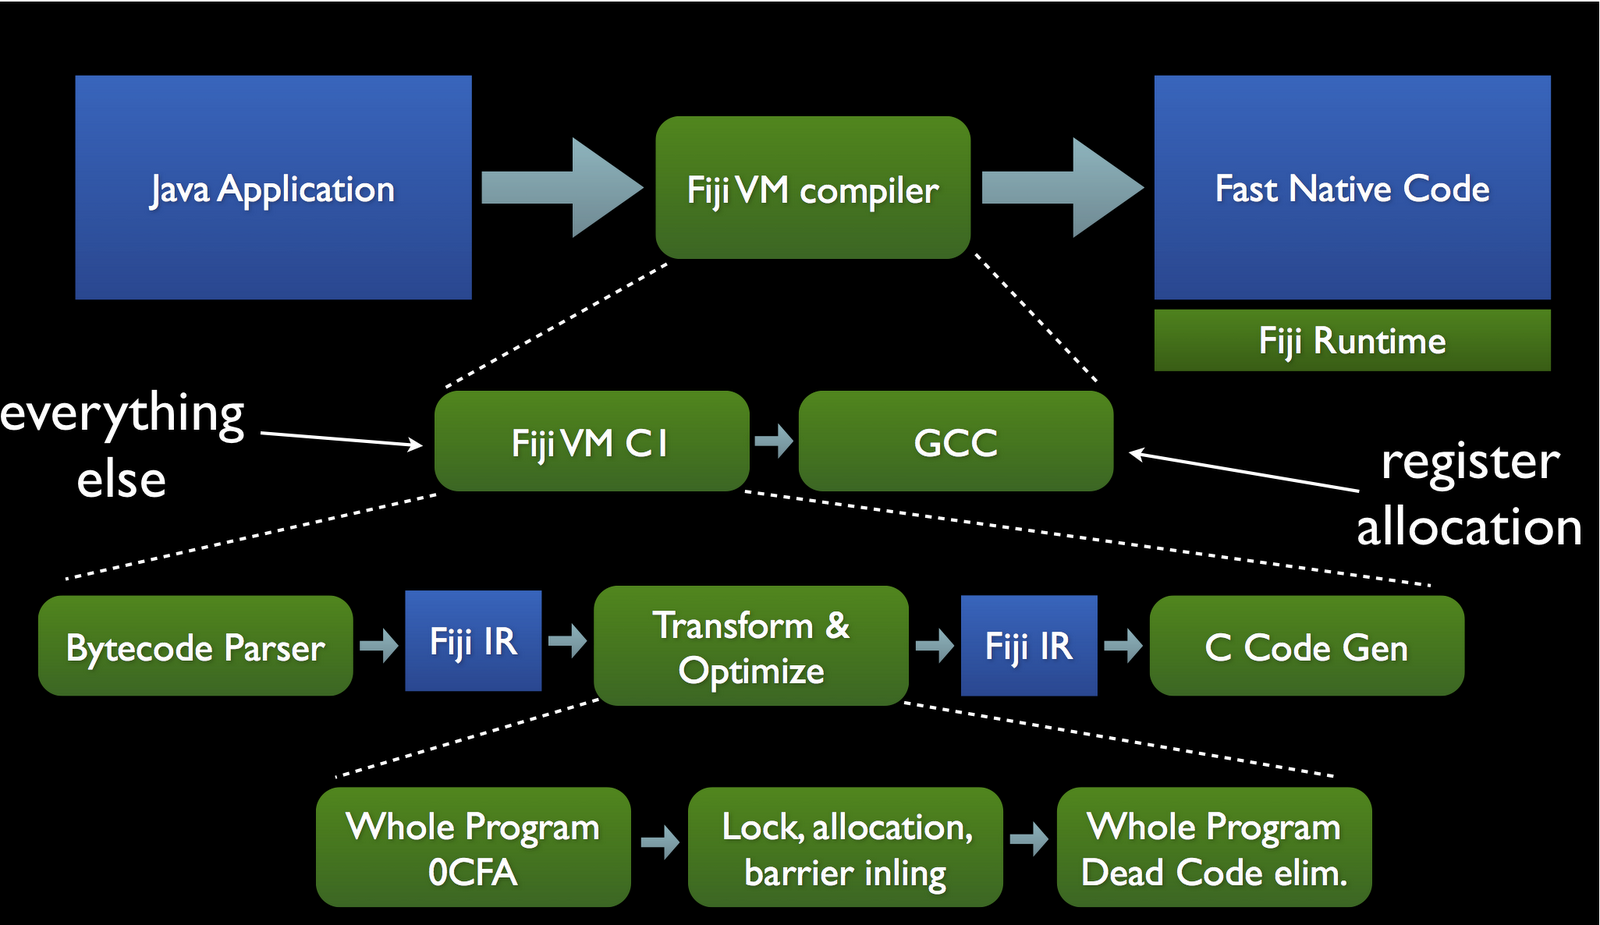 Real-Time Java: FijiVM - A Real-time Java VM Overview